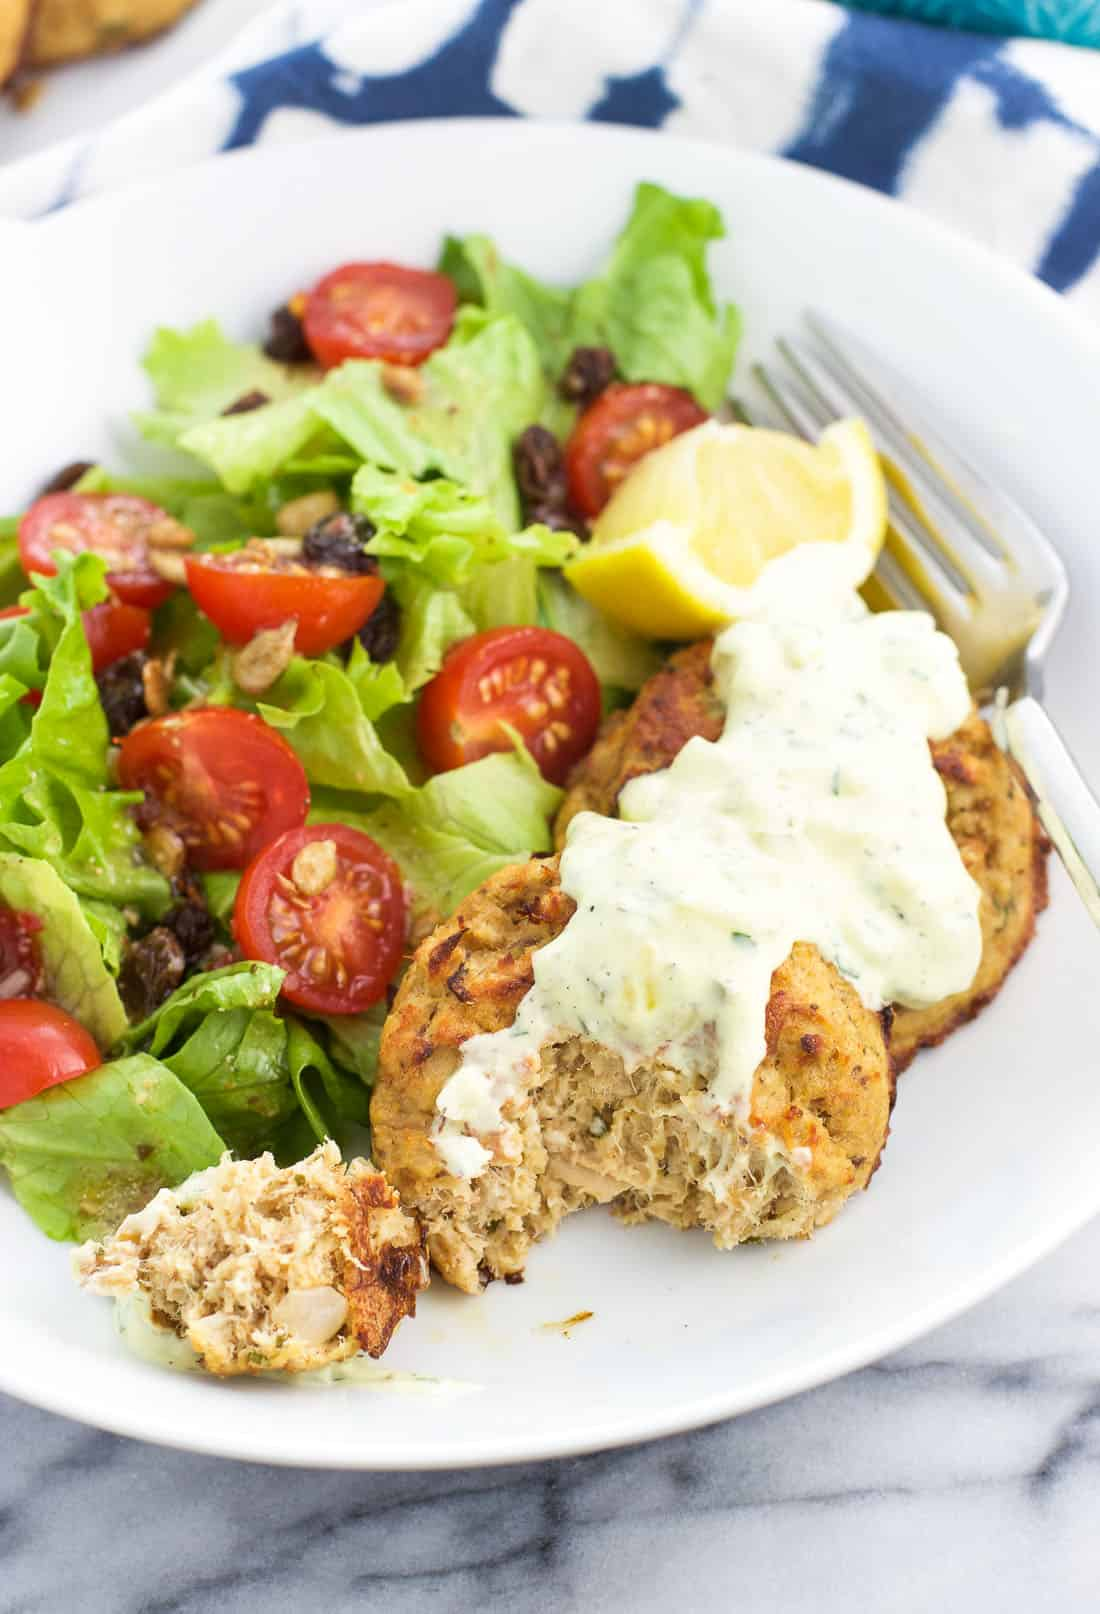 Healthy baked tuna cakes on a plate with a forkful removed from one of the cakes